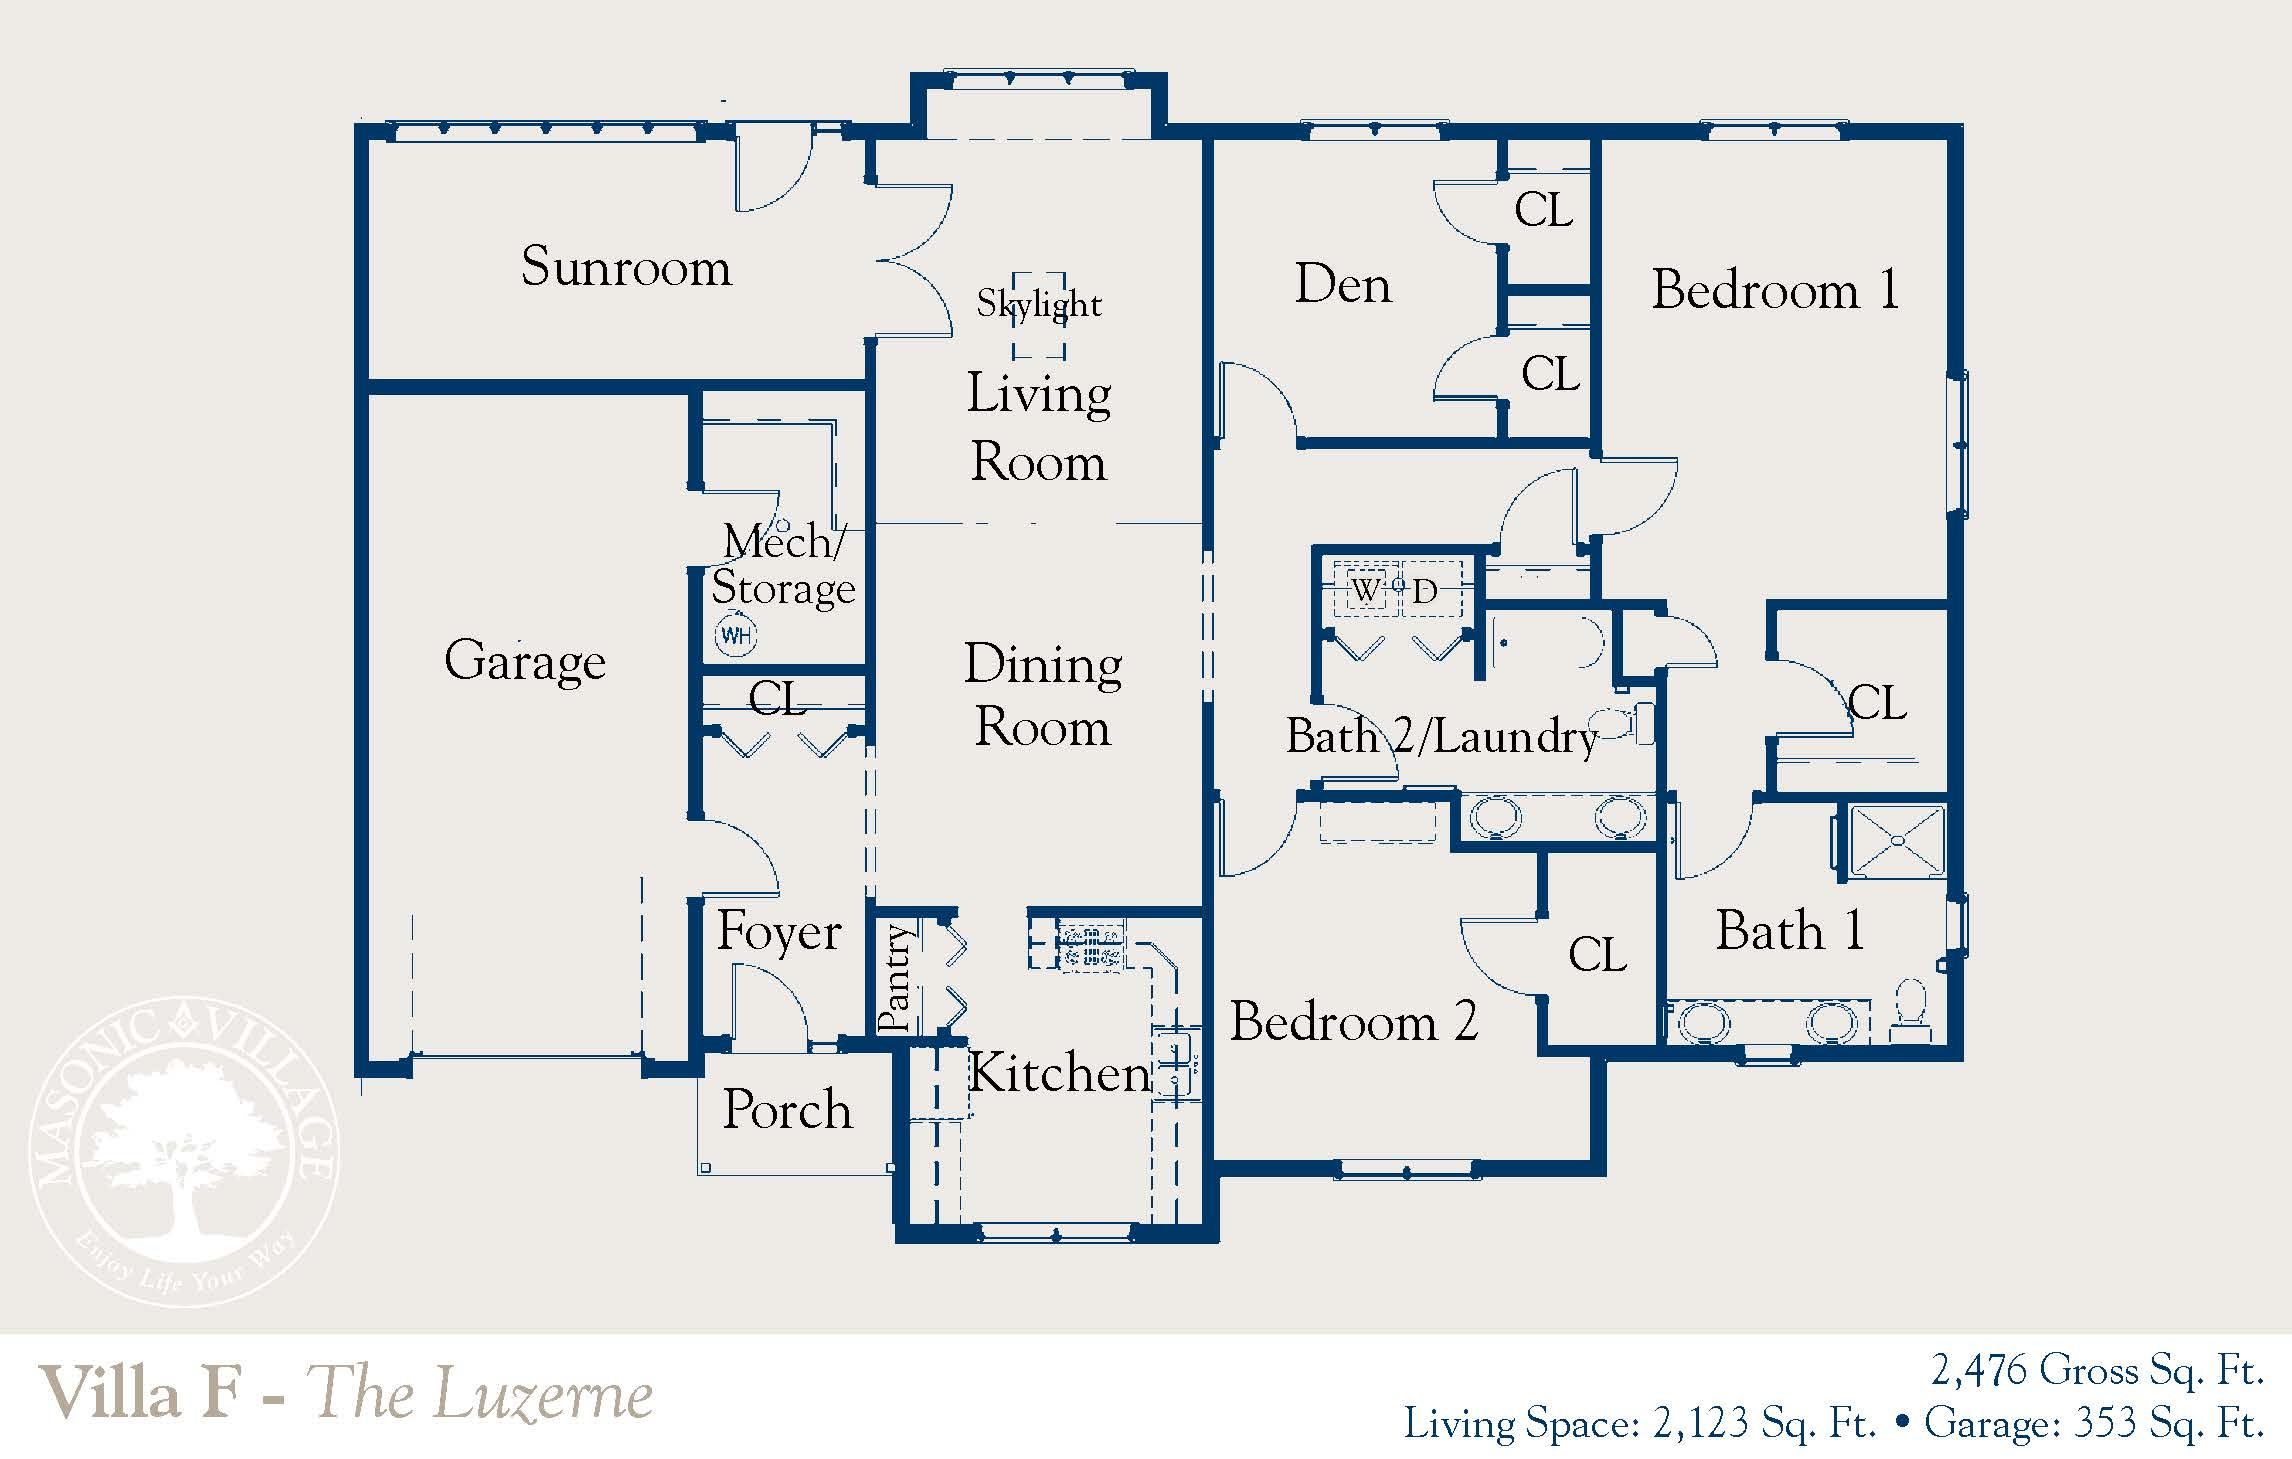 Masonic Village at Dallas, Luzerne Villa Floorplan